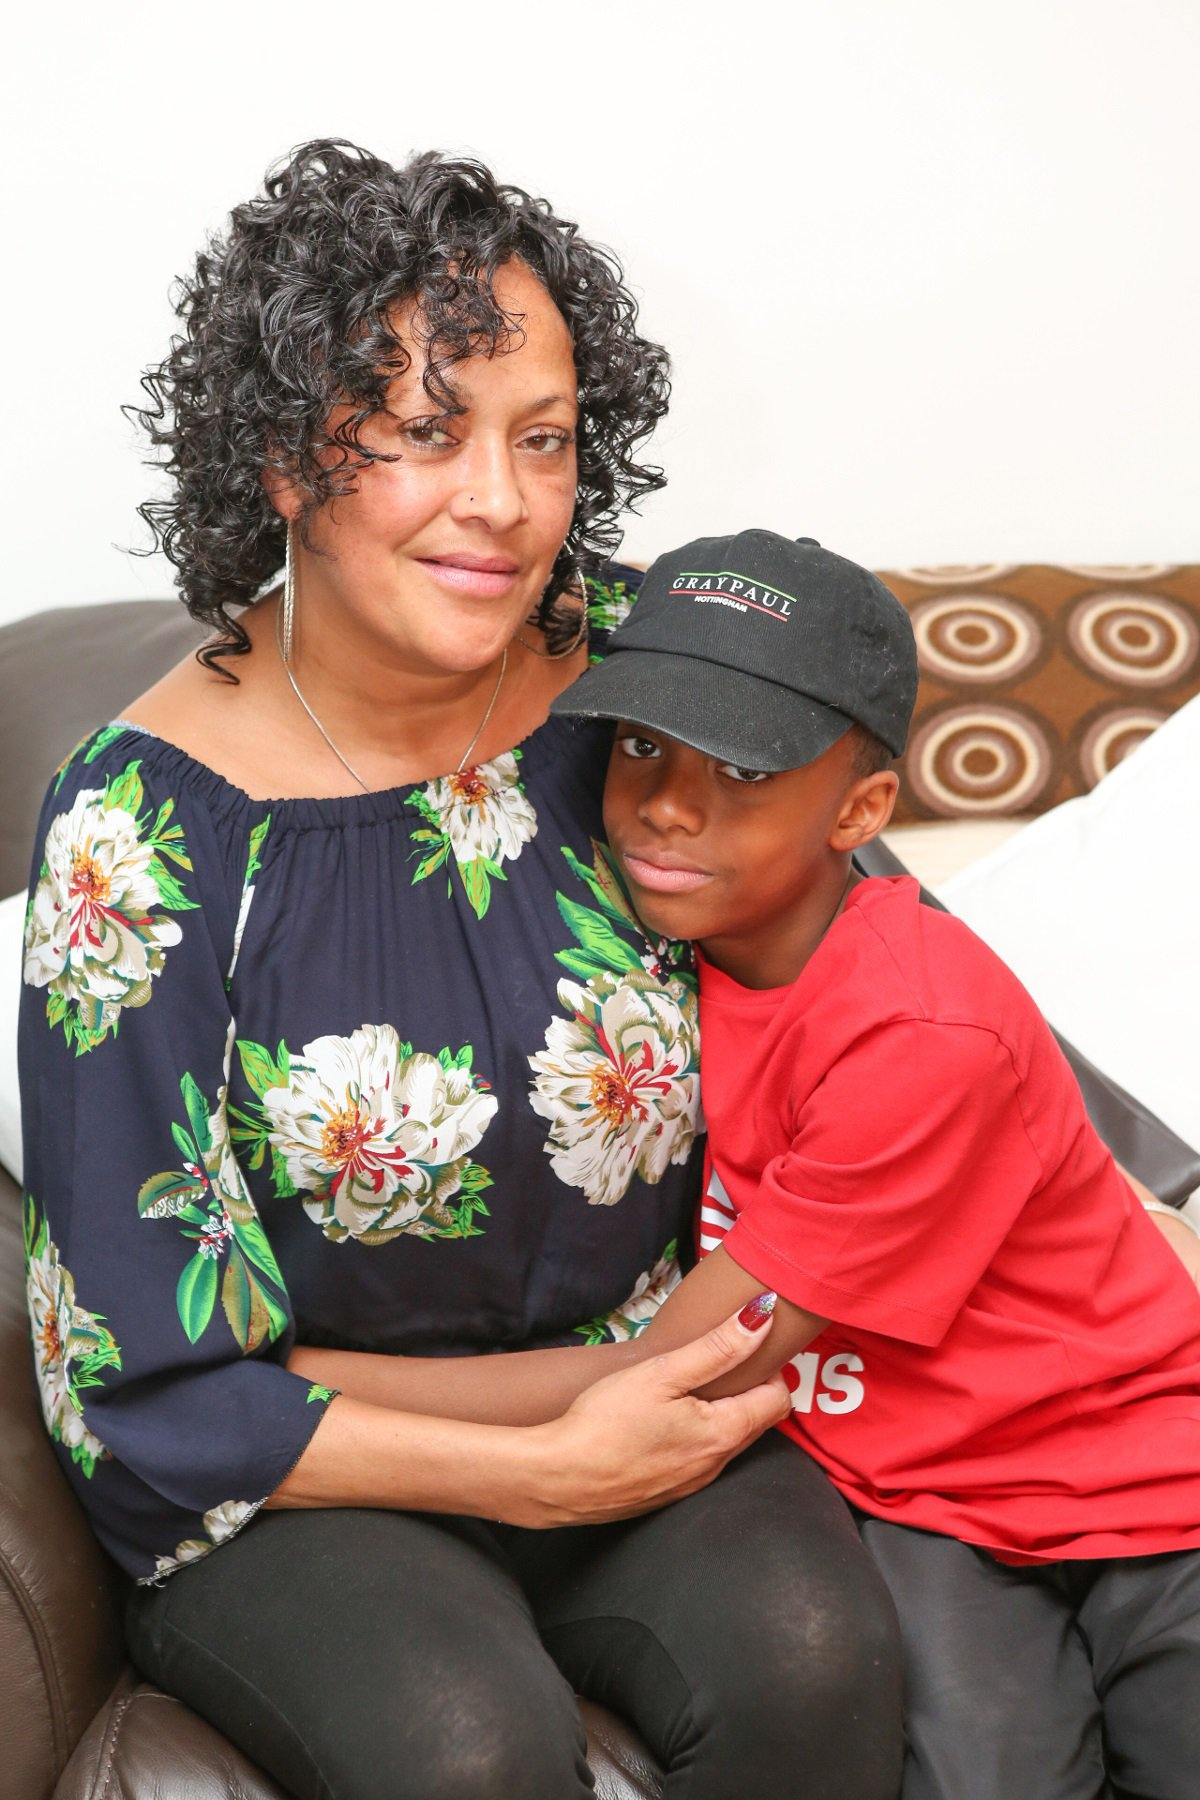 A 10-year-old boy had to walk 45 minutes home after school after he was not allowed to board a bus because he was 10p short. The boy's mother, Amanda Johnson, has spoken of her worry and upset after her son was not allowed onto a bus and made to walk from Ebury Road in Carrington to Mansfield Road near to the Arboretum, Nottingham. caption: Amanda Johnson with her son Jovanni Bojang, 10